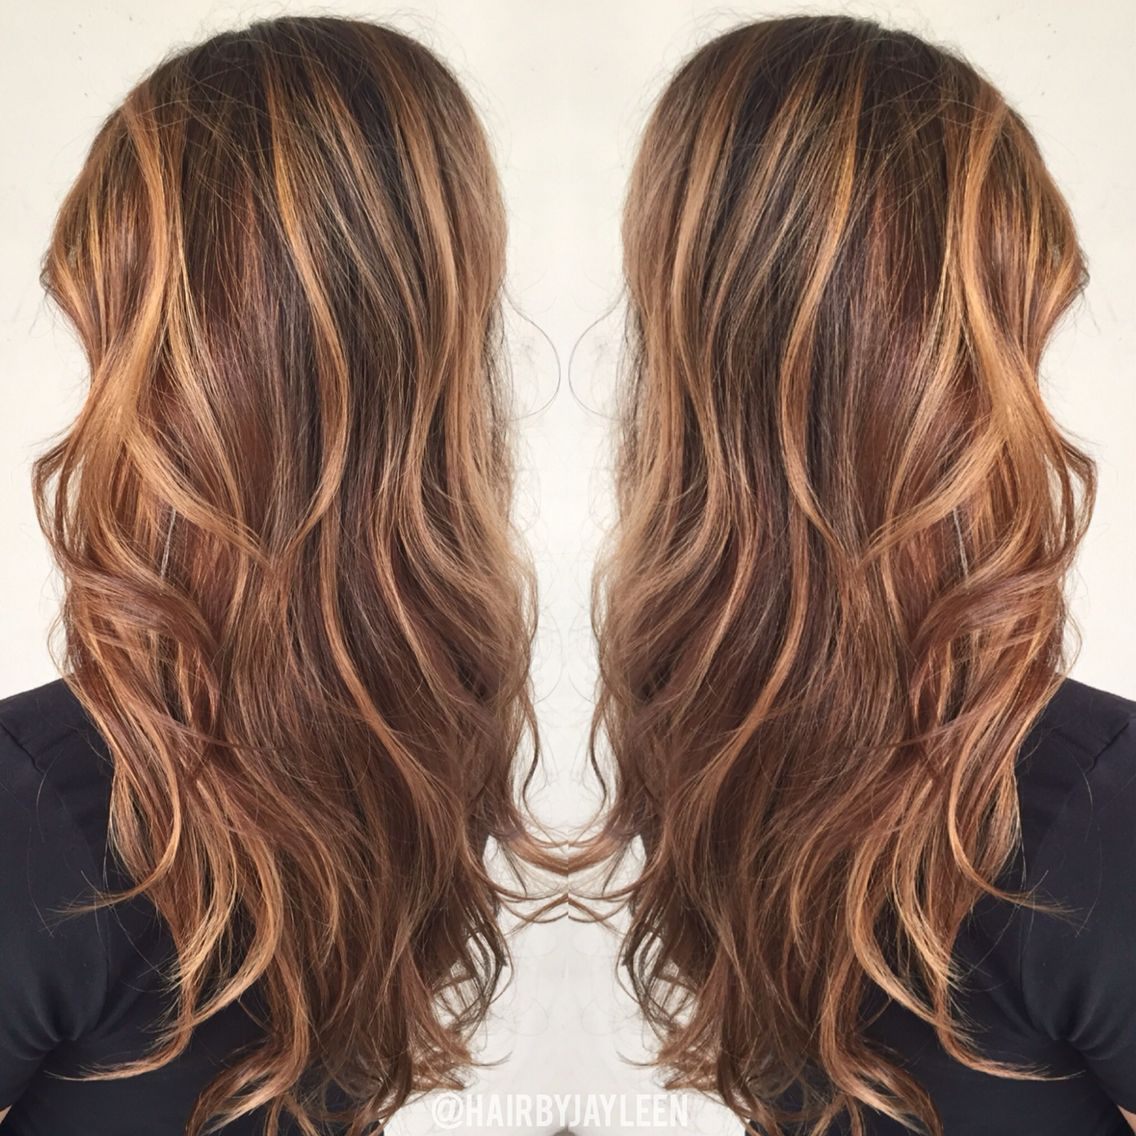 Brown Hair Color Caramel Highlights Caramel Balayage Warm Brown